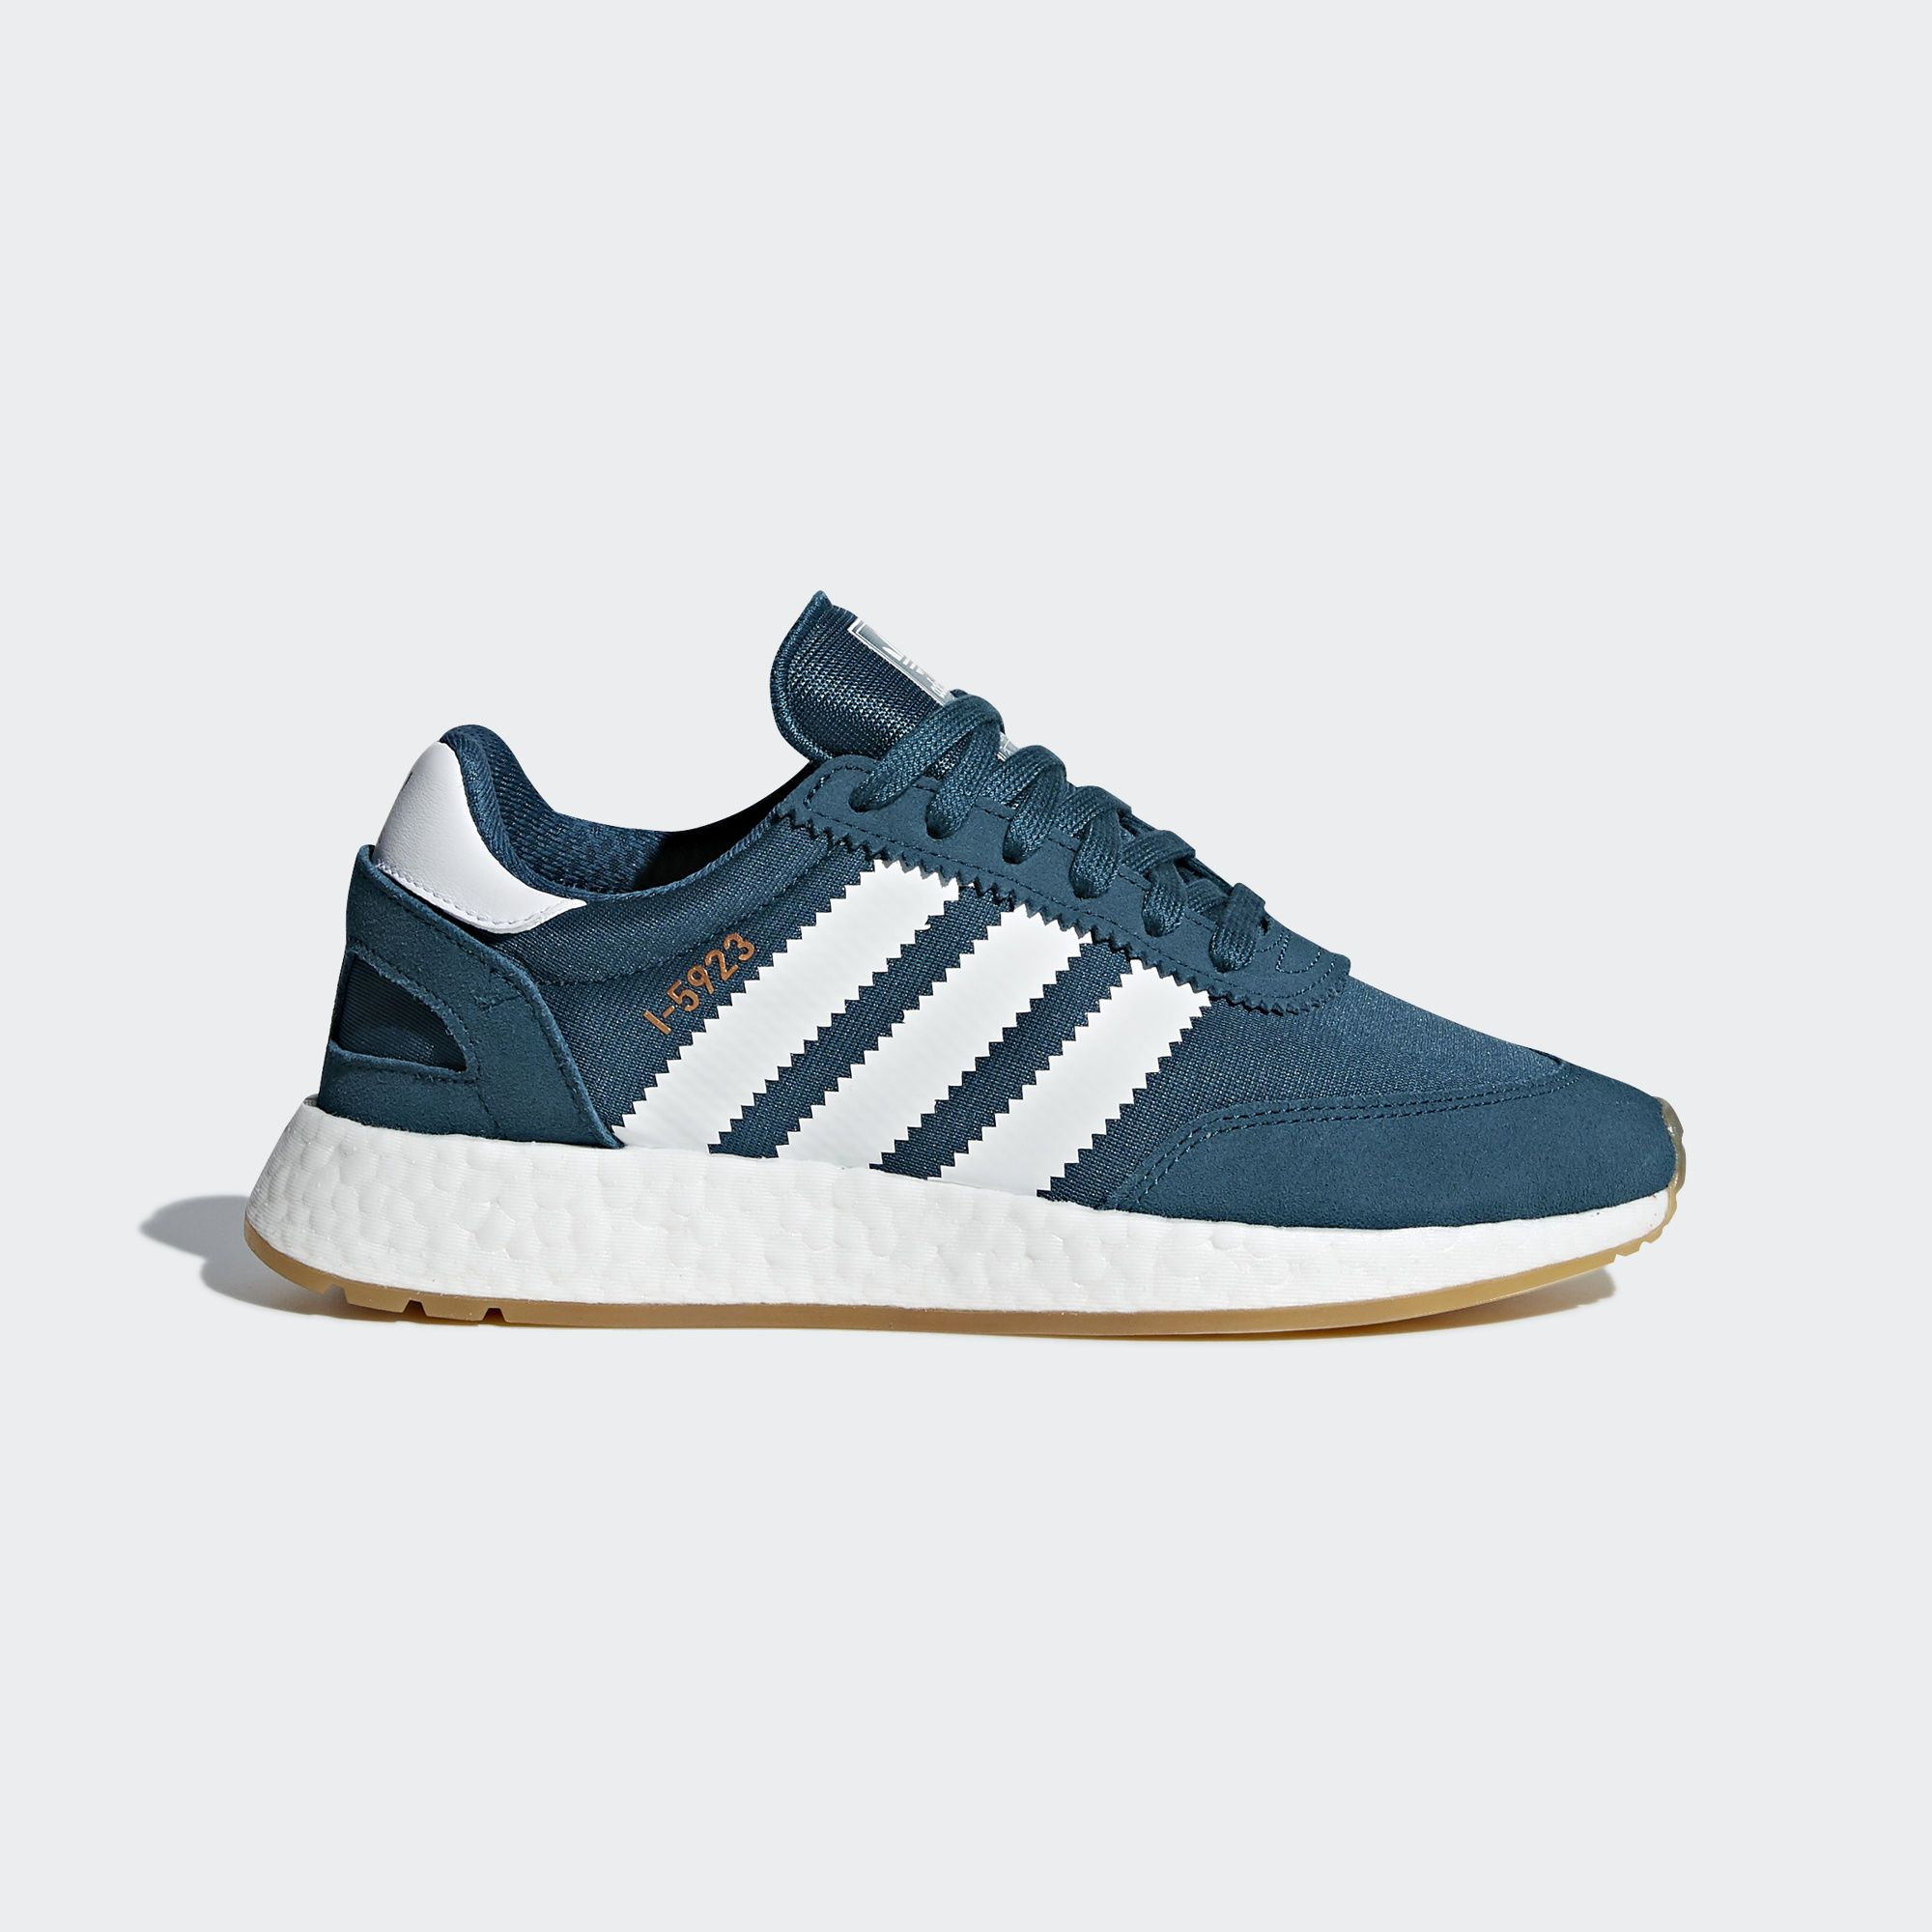 Shop the I-5923 Shoes - Blue at adidas.com/us! See all the ...